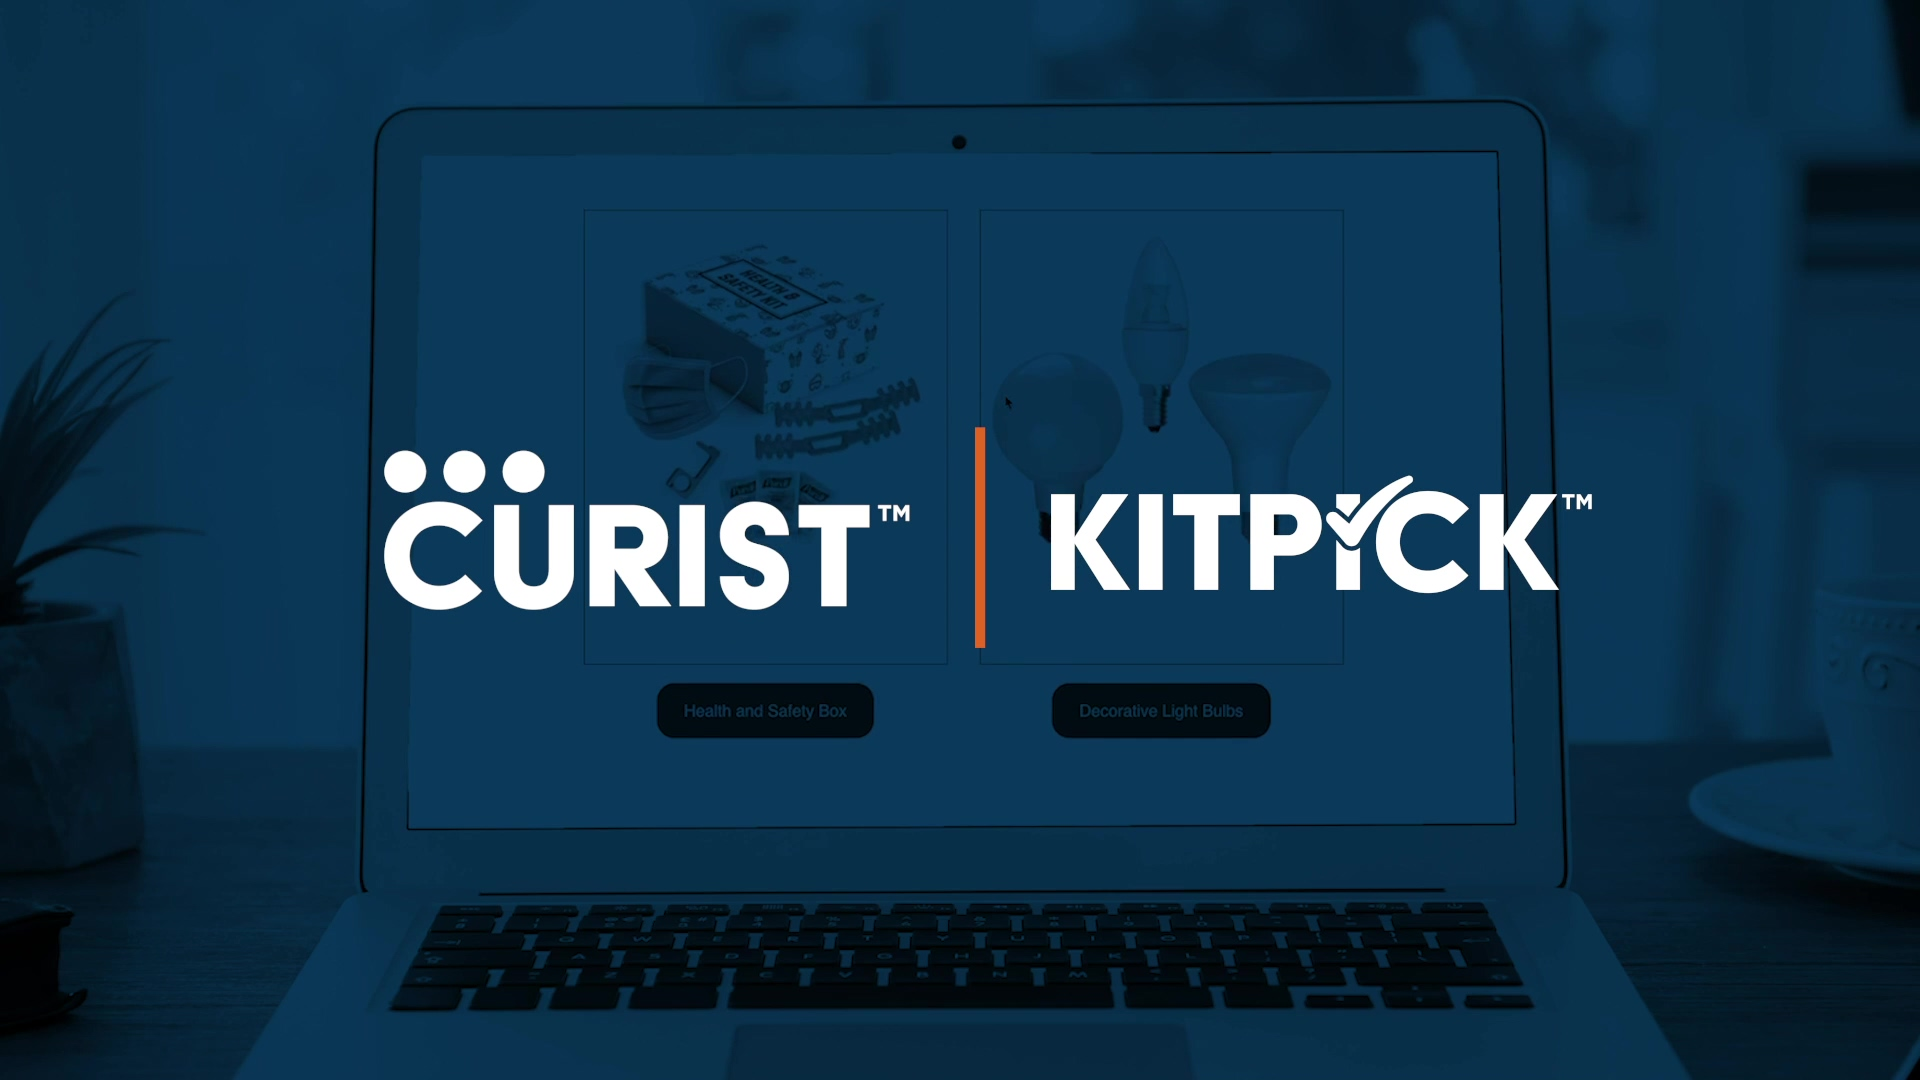 167-0020-02-00_Curist and KitPick Video